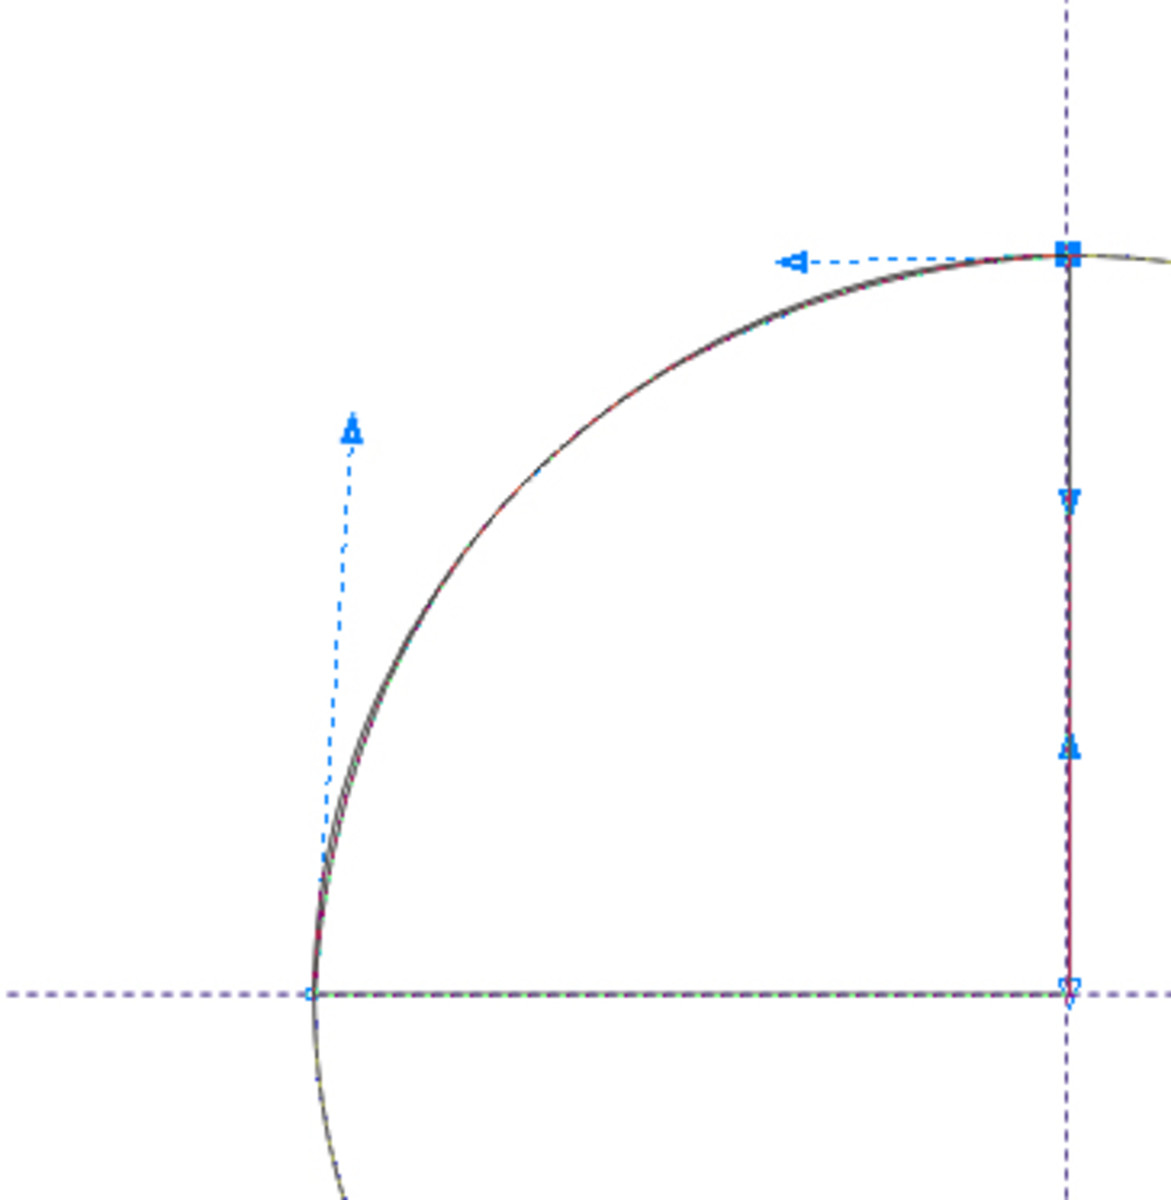 adjusting the diagonal line by means of the node points